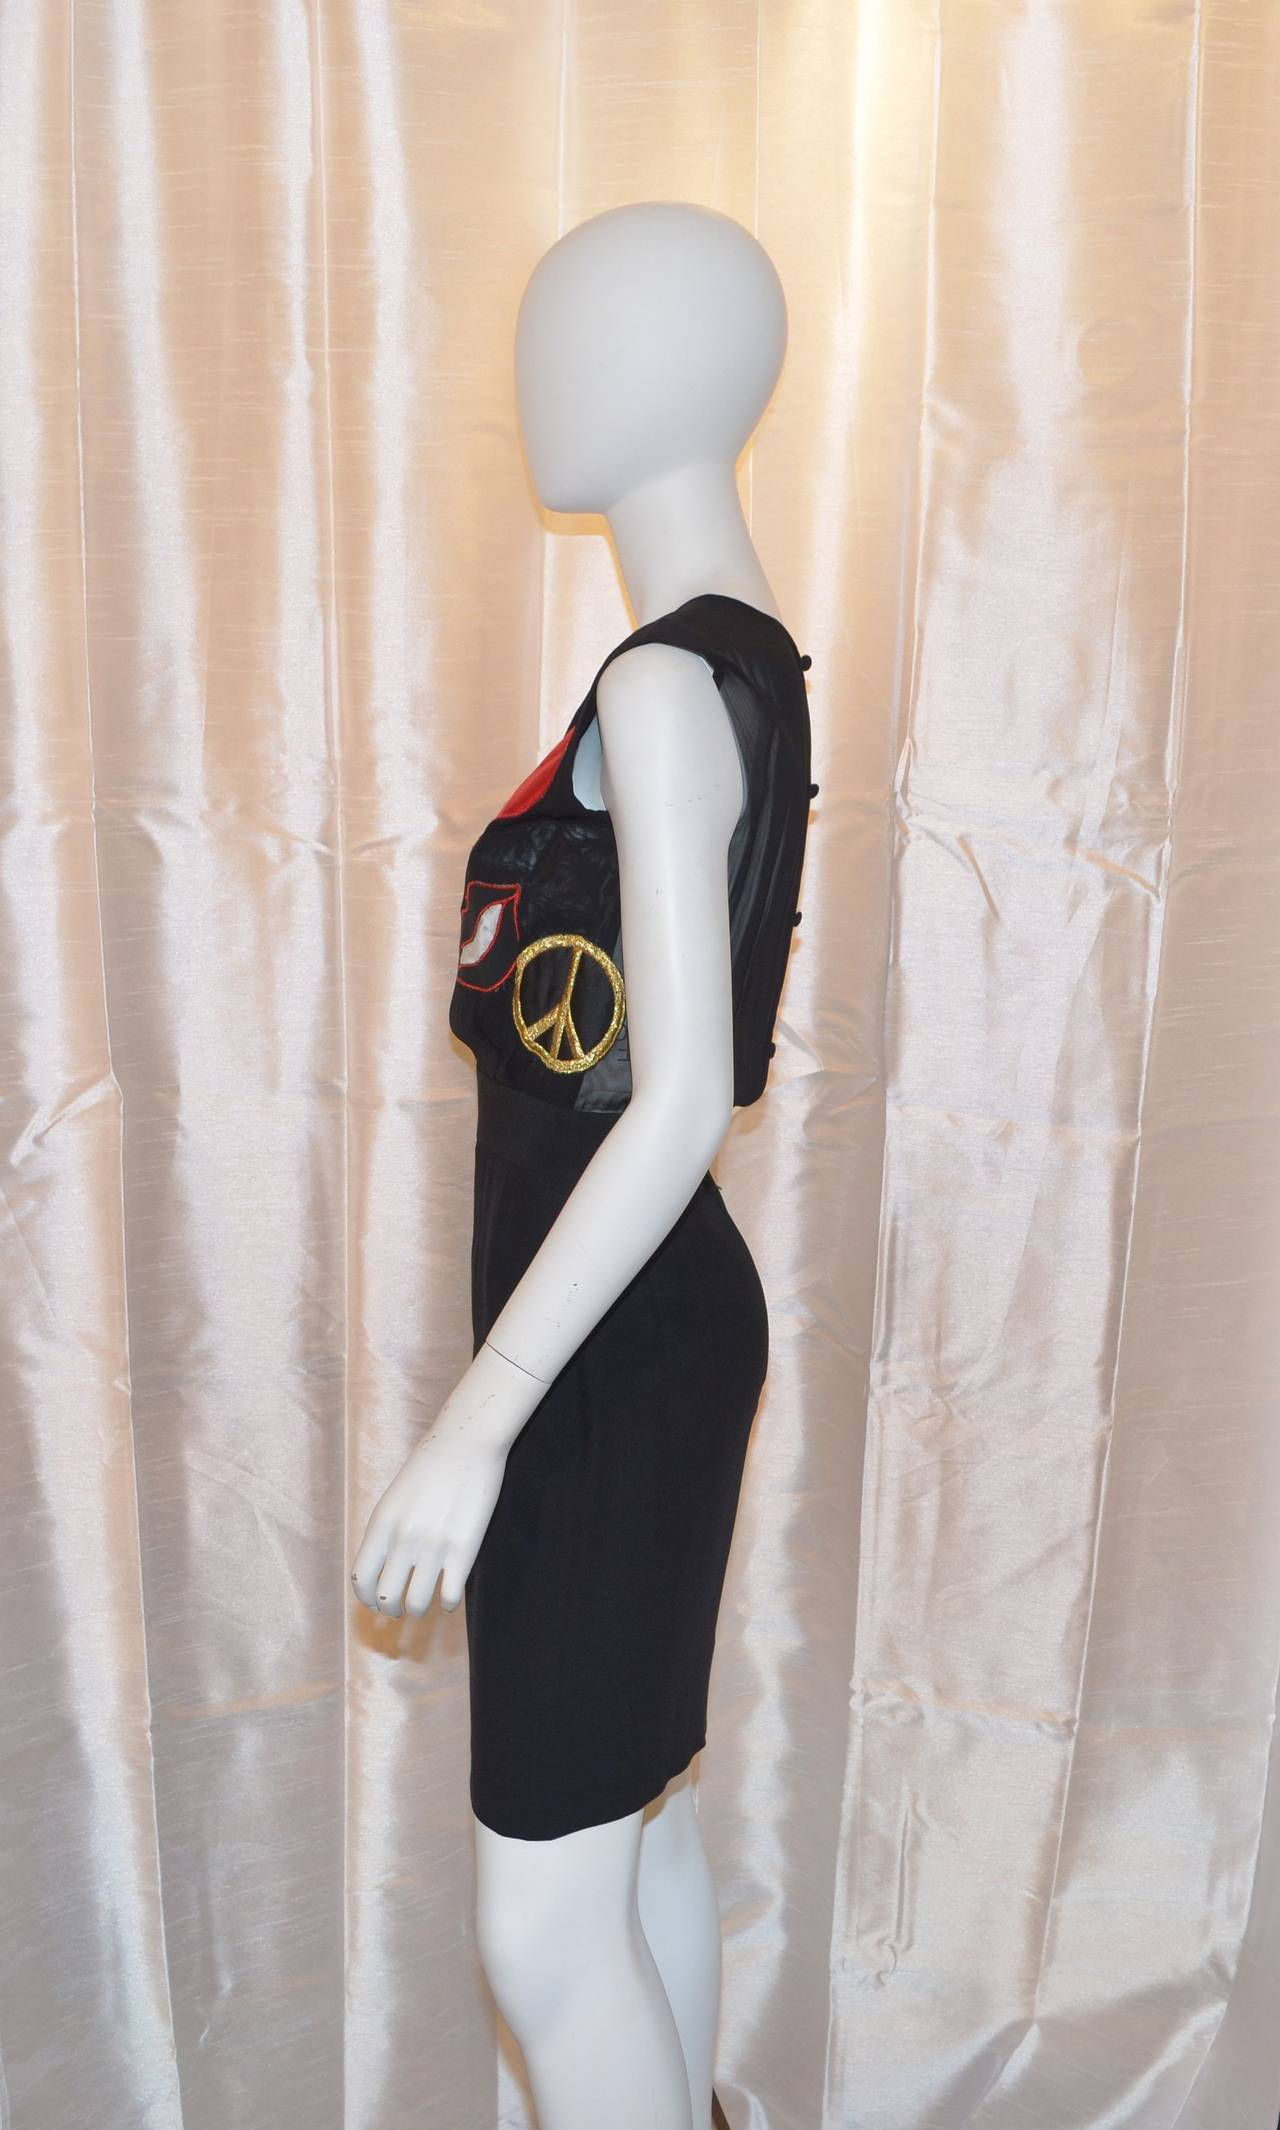 Moschino dress features some fun patches over the bust area, back zipper fastening, and button closures. Made in Italy, size 40 (US size 6).  Measurements: Bust - 34'' Waist - 26'' Hips - 36'' Length - 37''